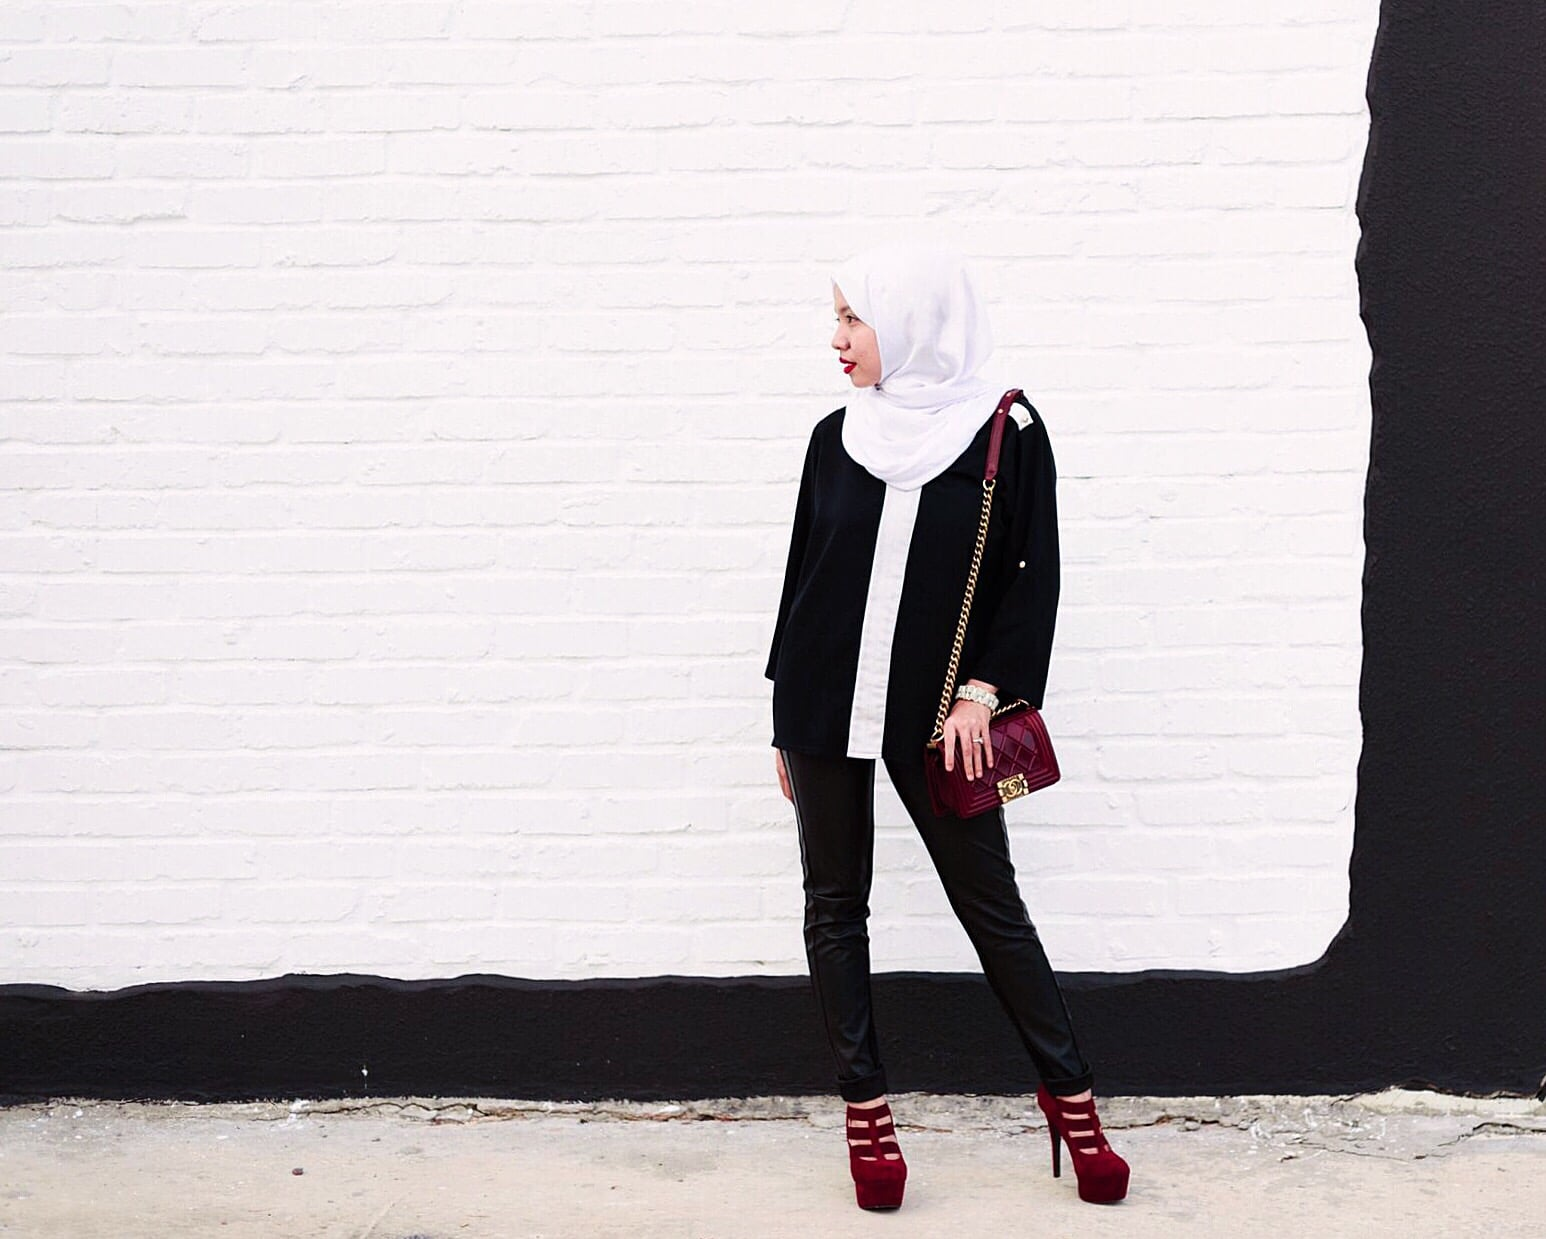 Oooops sorry. No picture of my new hairdo. But here is a picture of my ootd in front of the shop. Hehe.